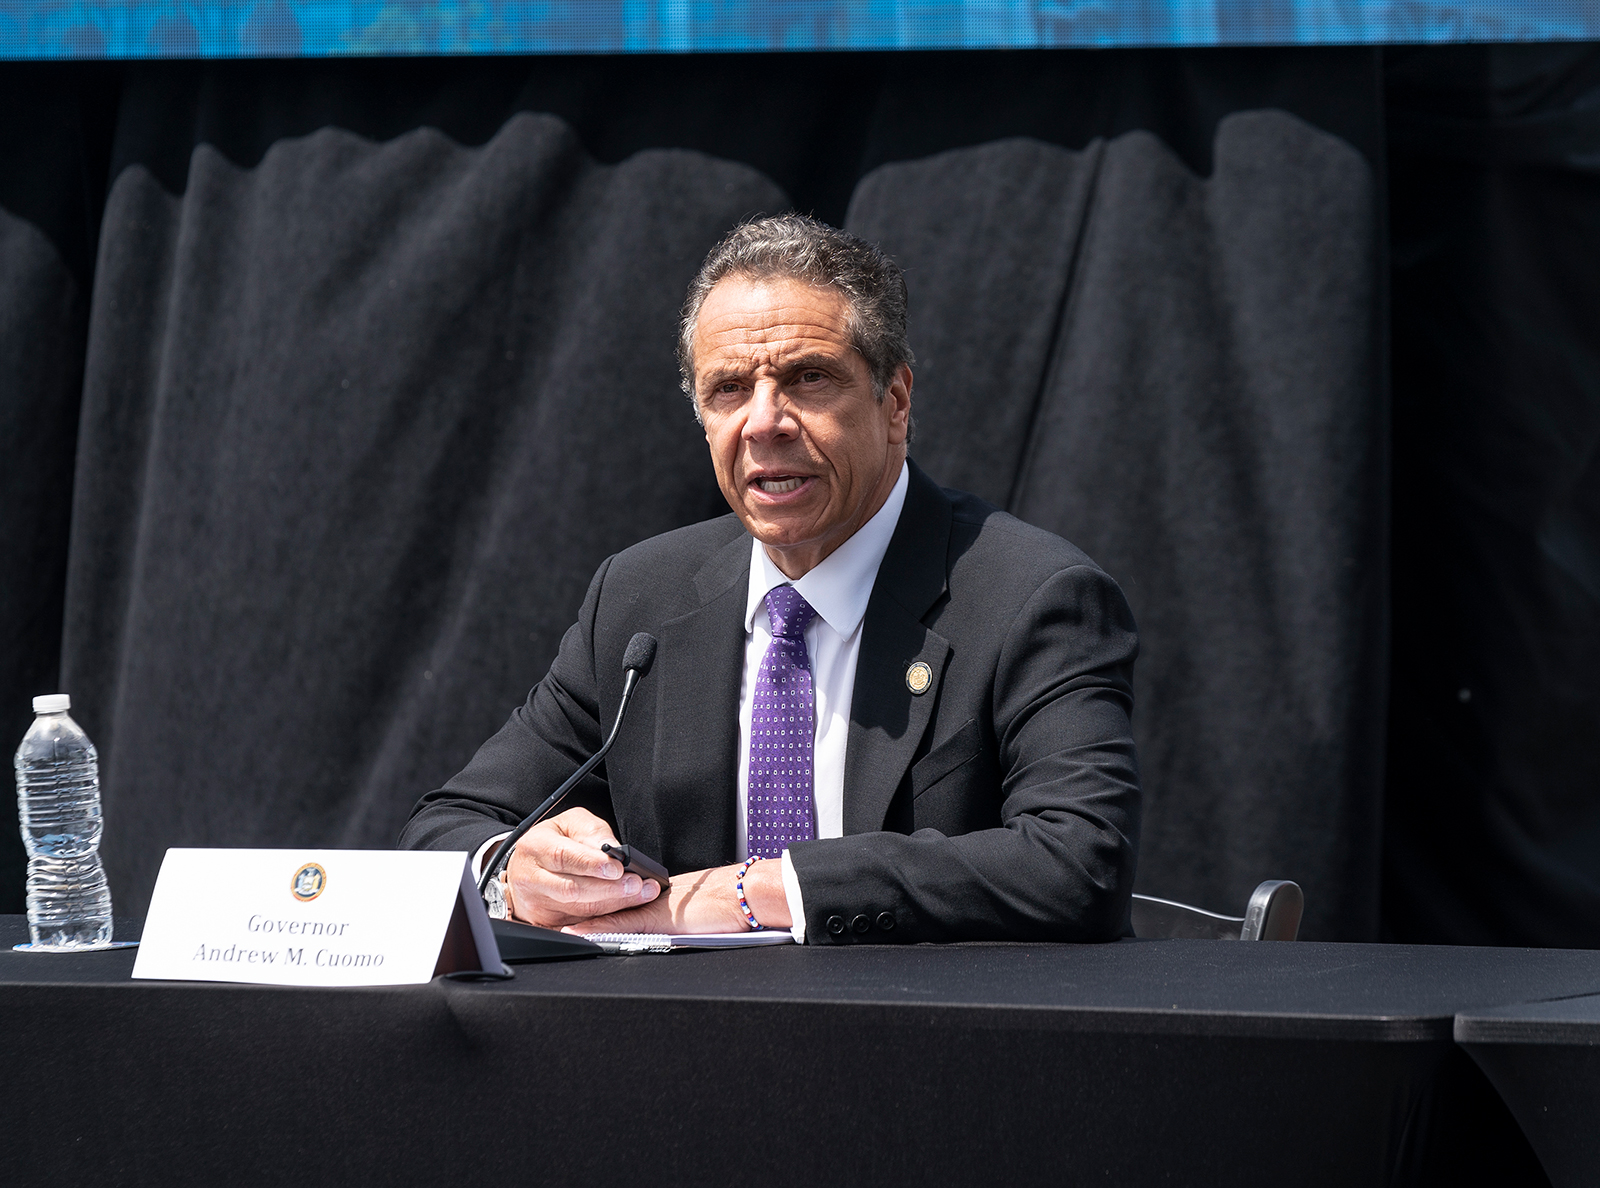 Governor Andrew Cuomo speaks at a daily press briefing in Tarrytown, New York on June 15.